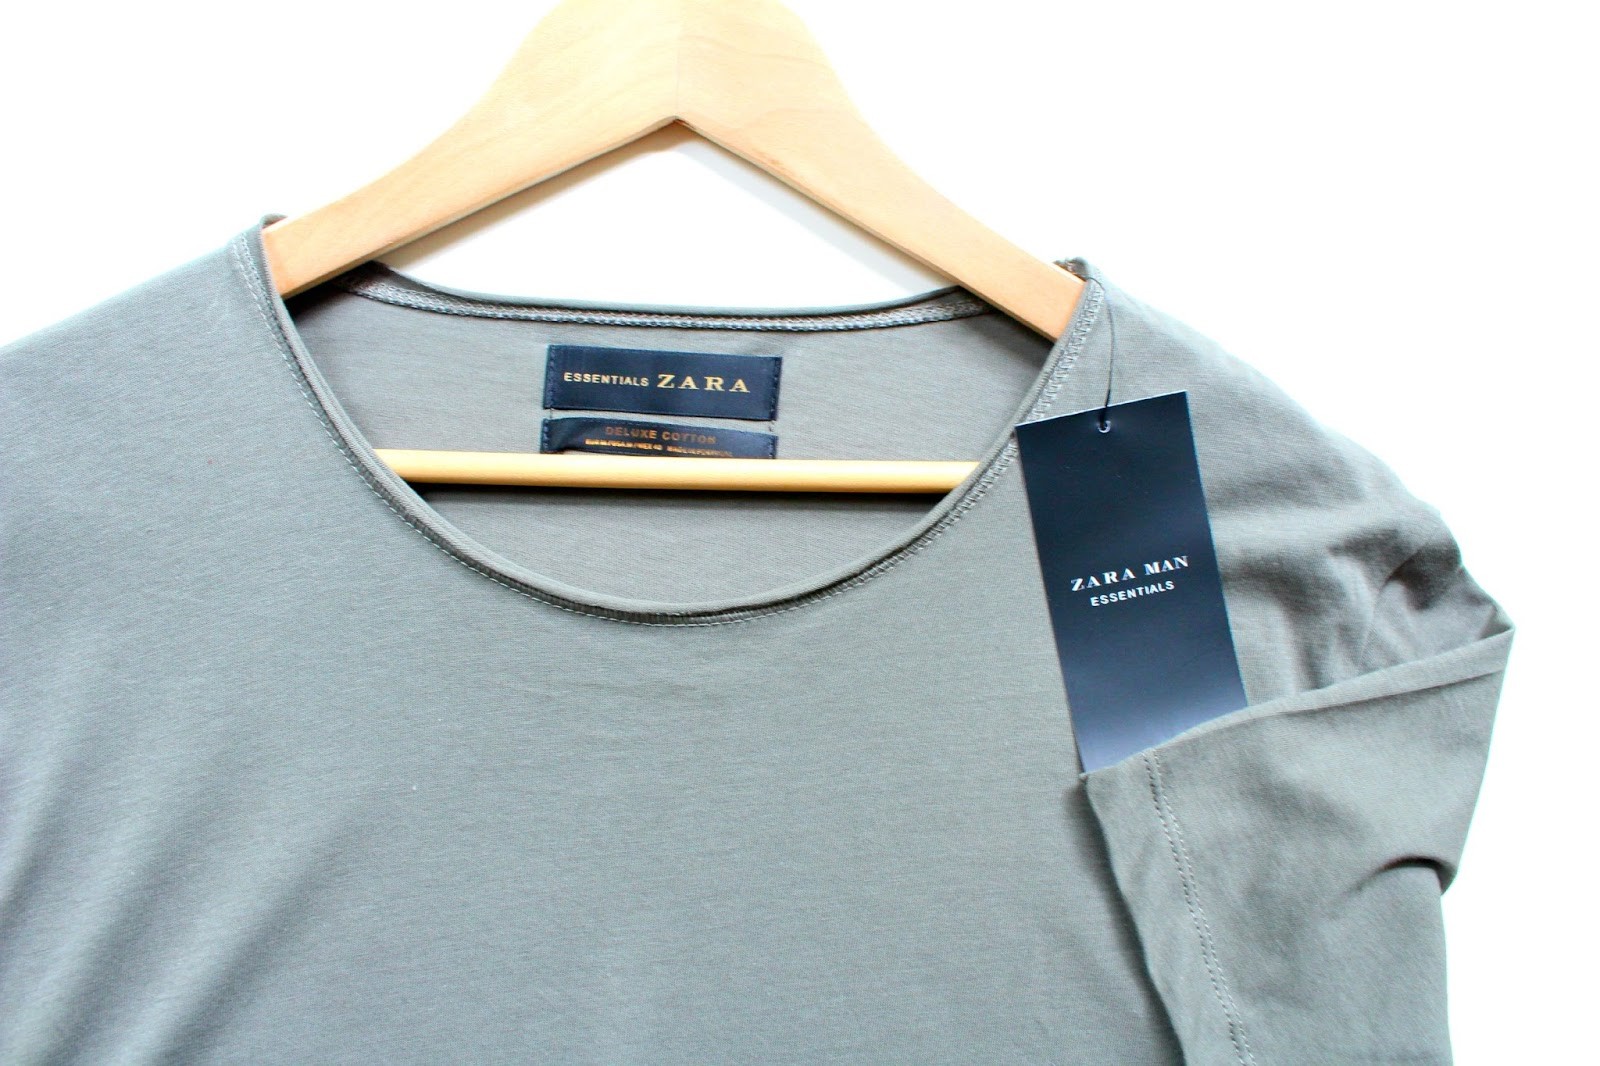 Zara Men // T-shirts | The Classic Male